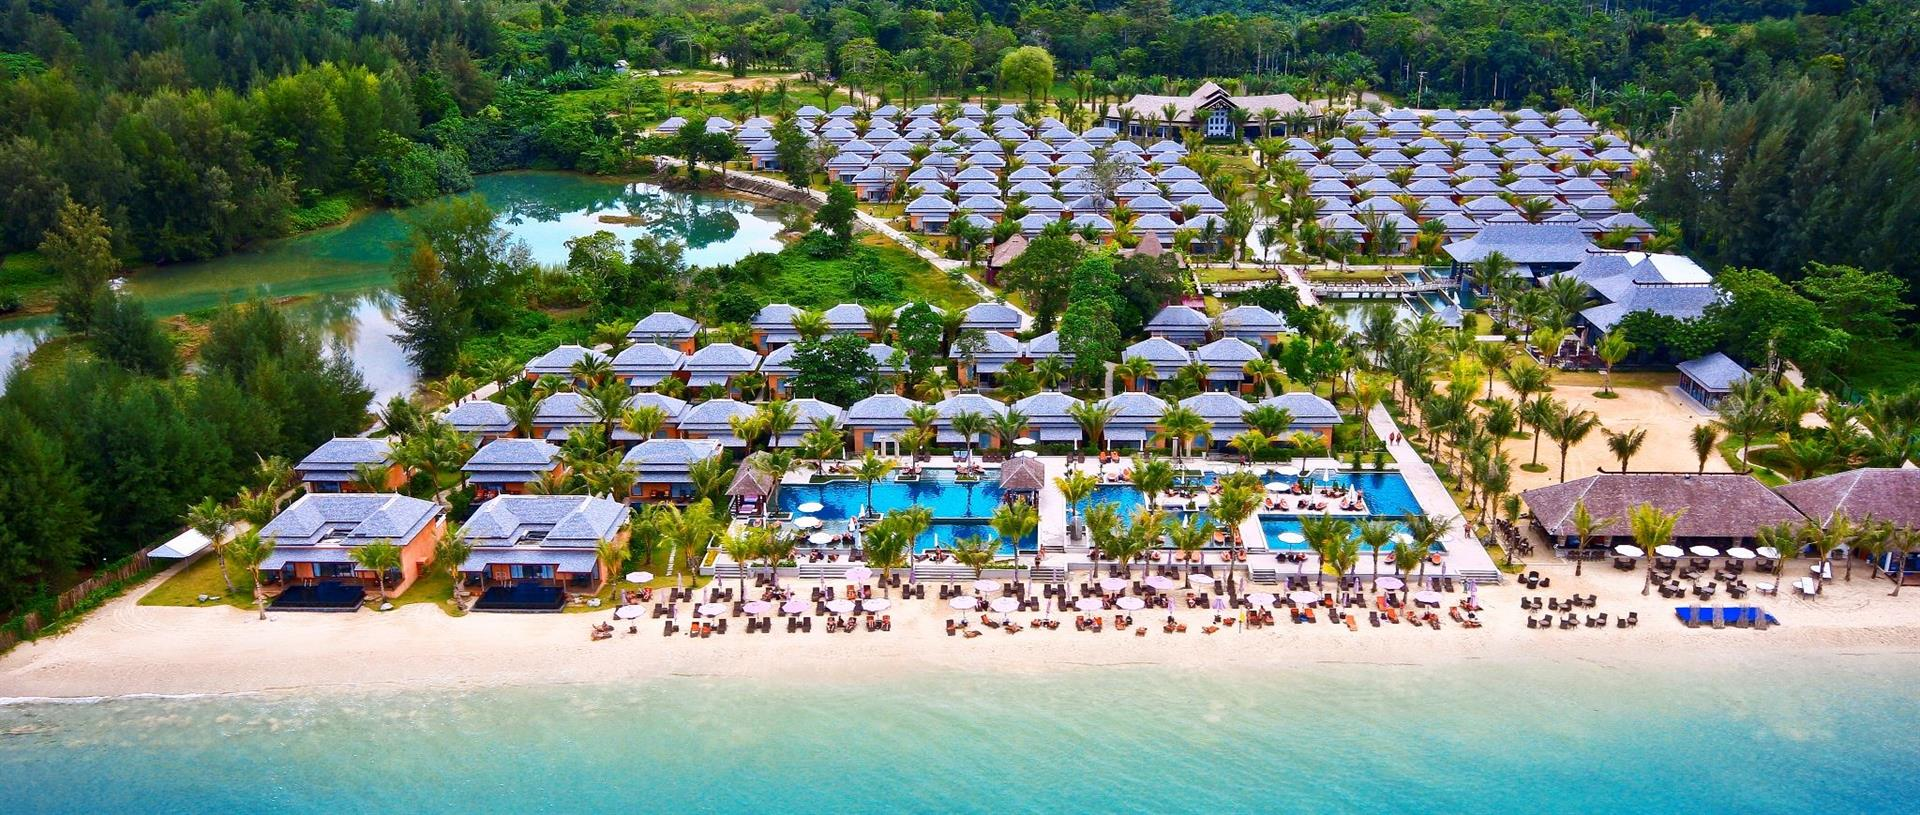 Пхукет- Beyond Resorts KhaoLak 4 ⭐️